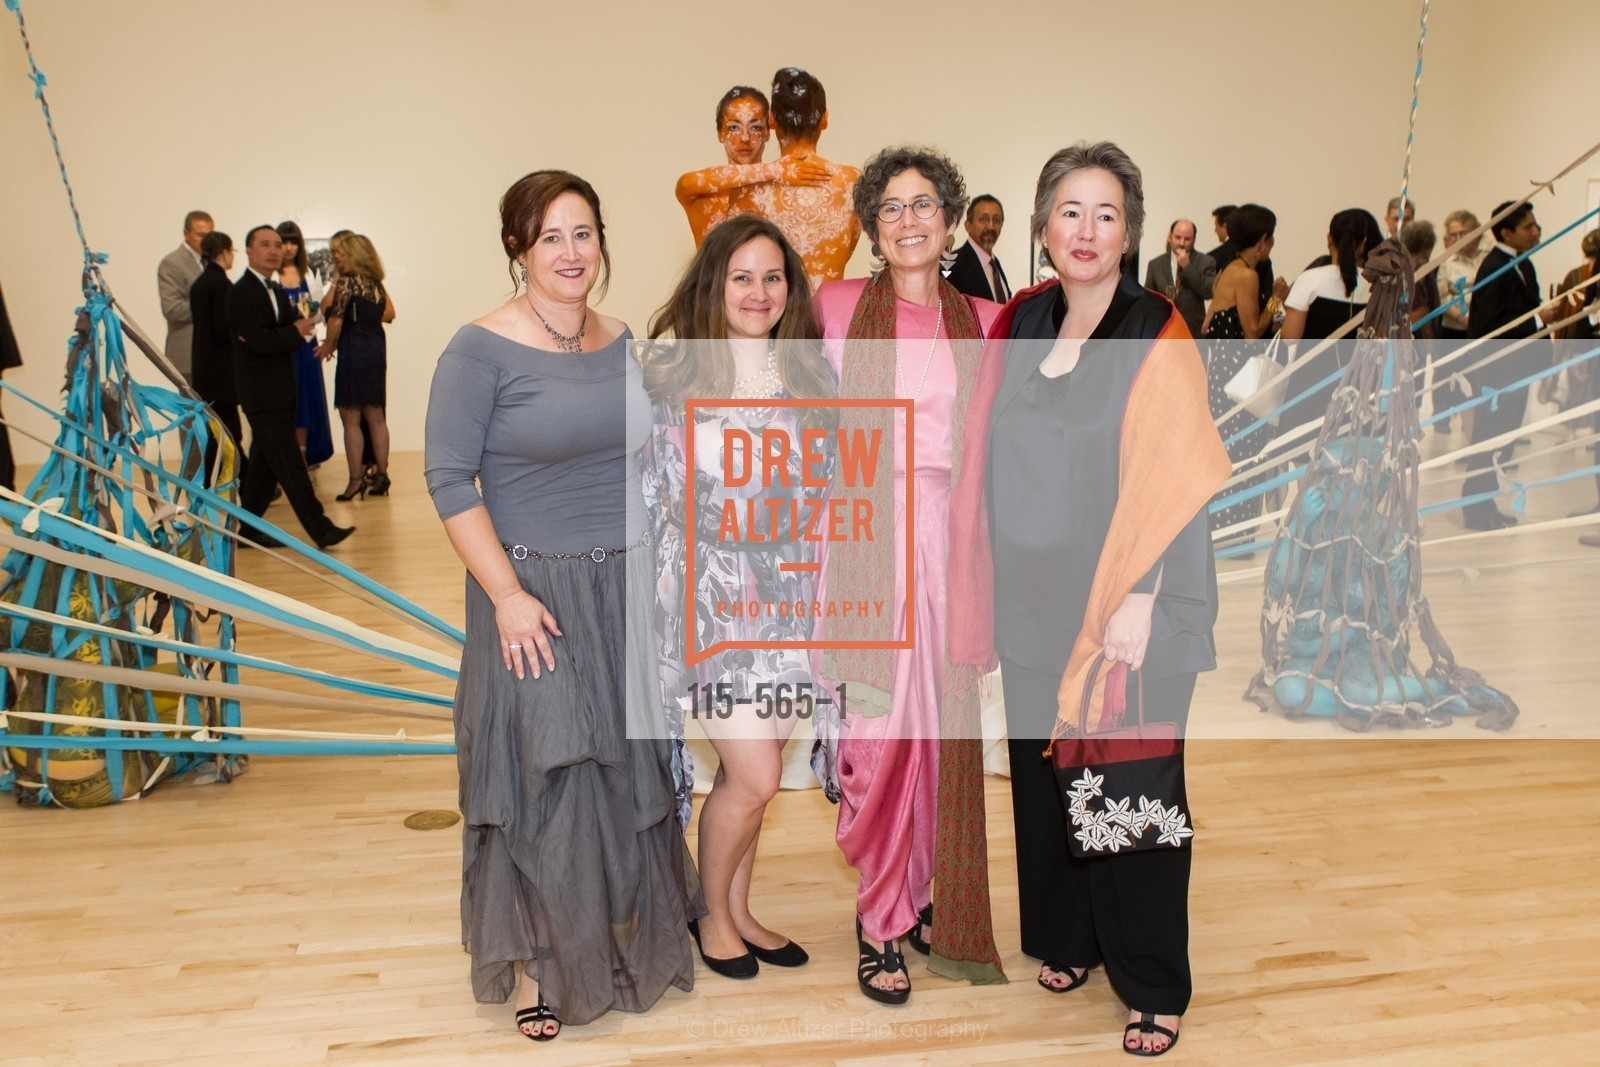 Cornelia Pendleton, Trina Merry, Susan Krane, Claudia Weber, GLAAD GALA Kick-Off Party Hosted by SAKS FIFTH AVENUE, Saks Fifth Avenue. 384 Post Street, September 12th, 2014,Drew Altizer, Drew Altizer Photography, full-service agency, private events, San Francisco photographer, photographer california